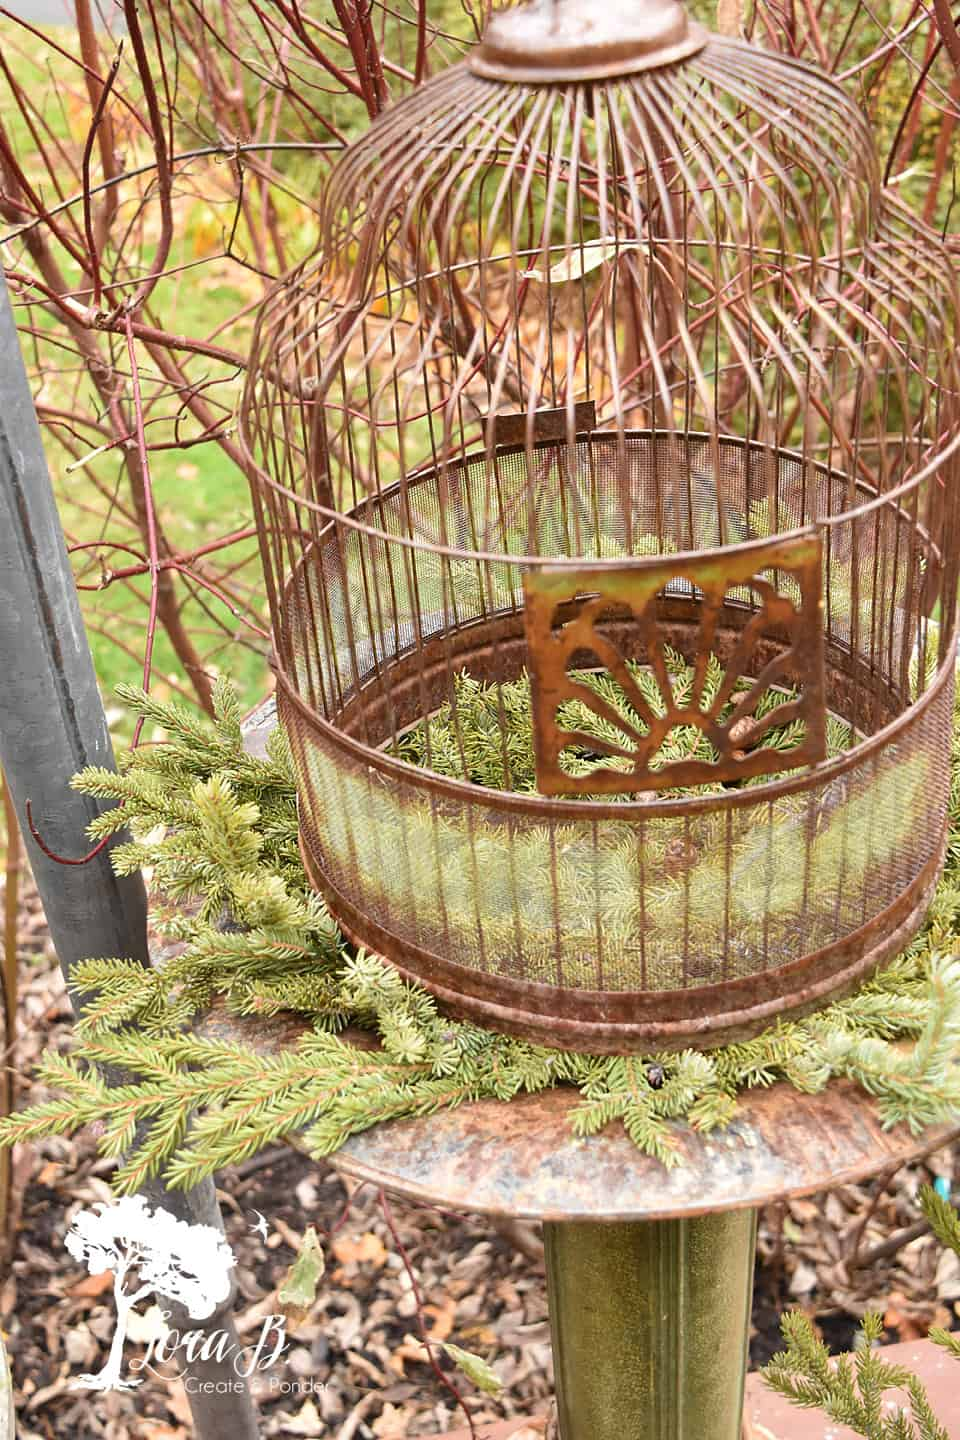 Add extra greens to the base of a bird bath.